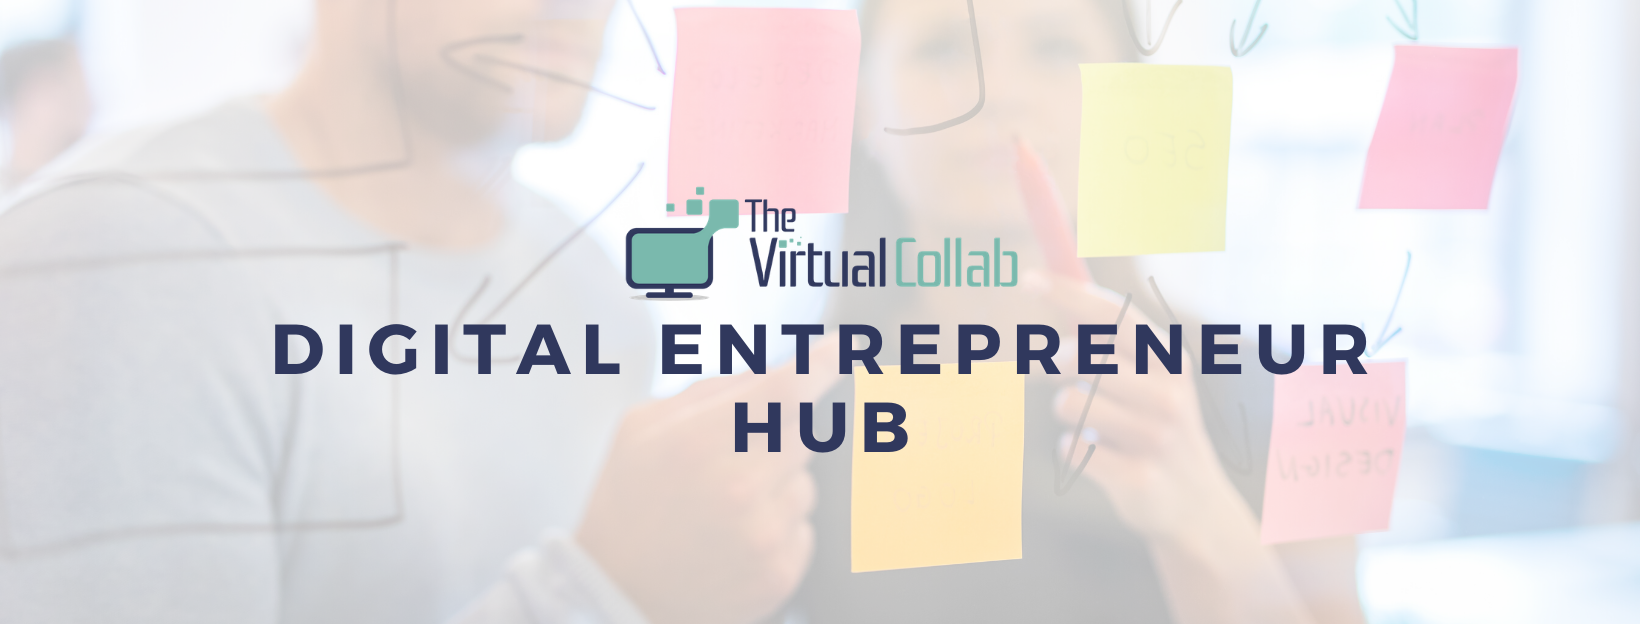 The VCH Digital Entrepreneur Hub